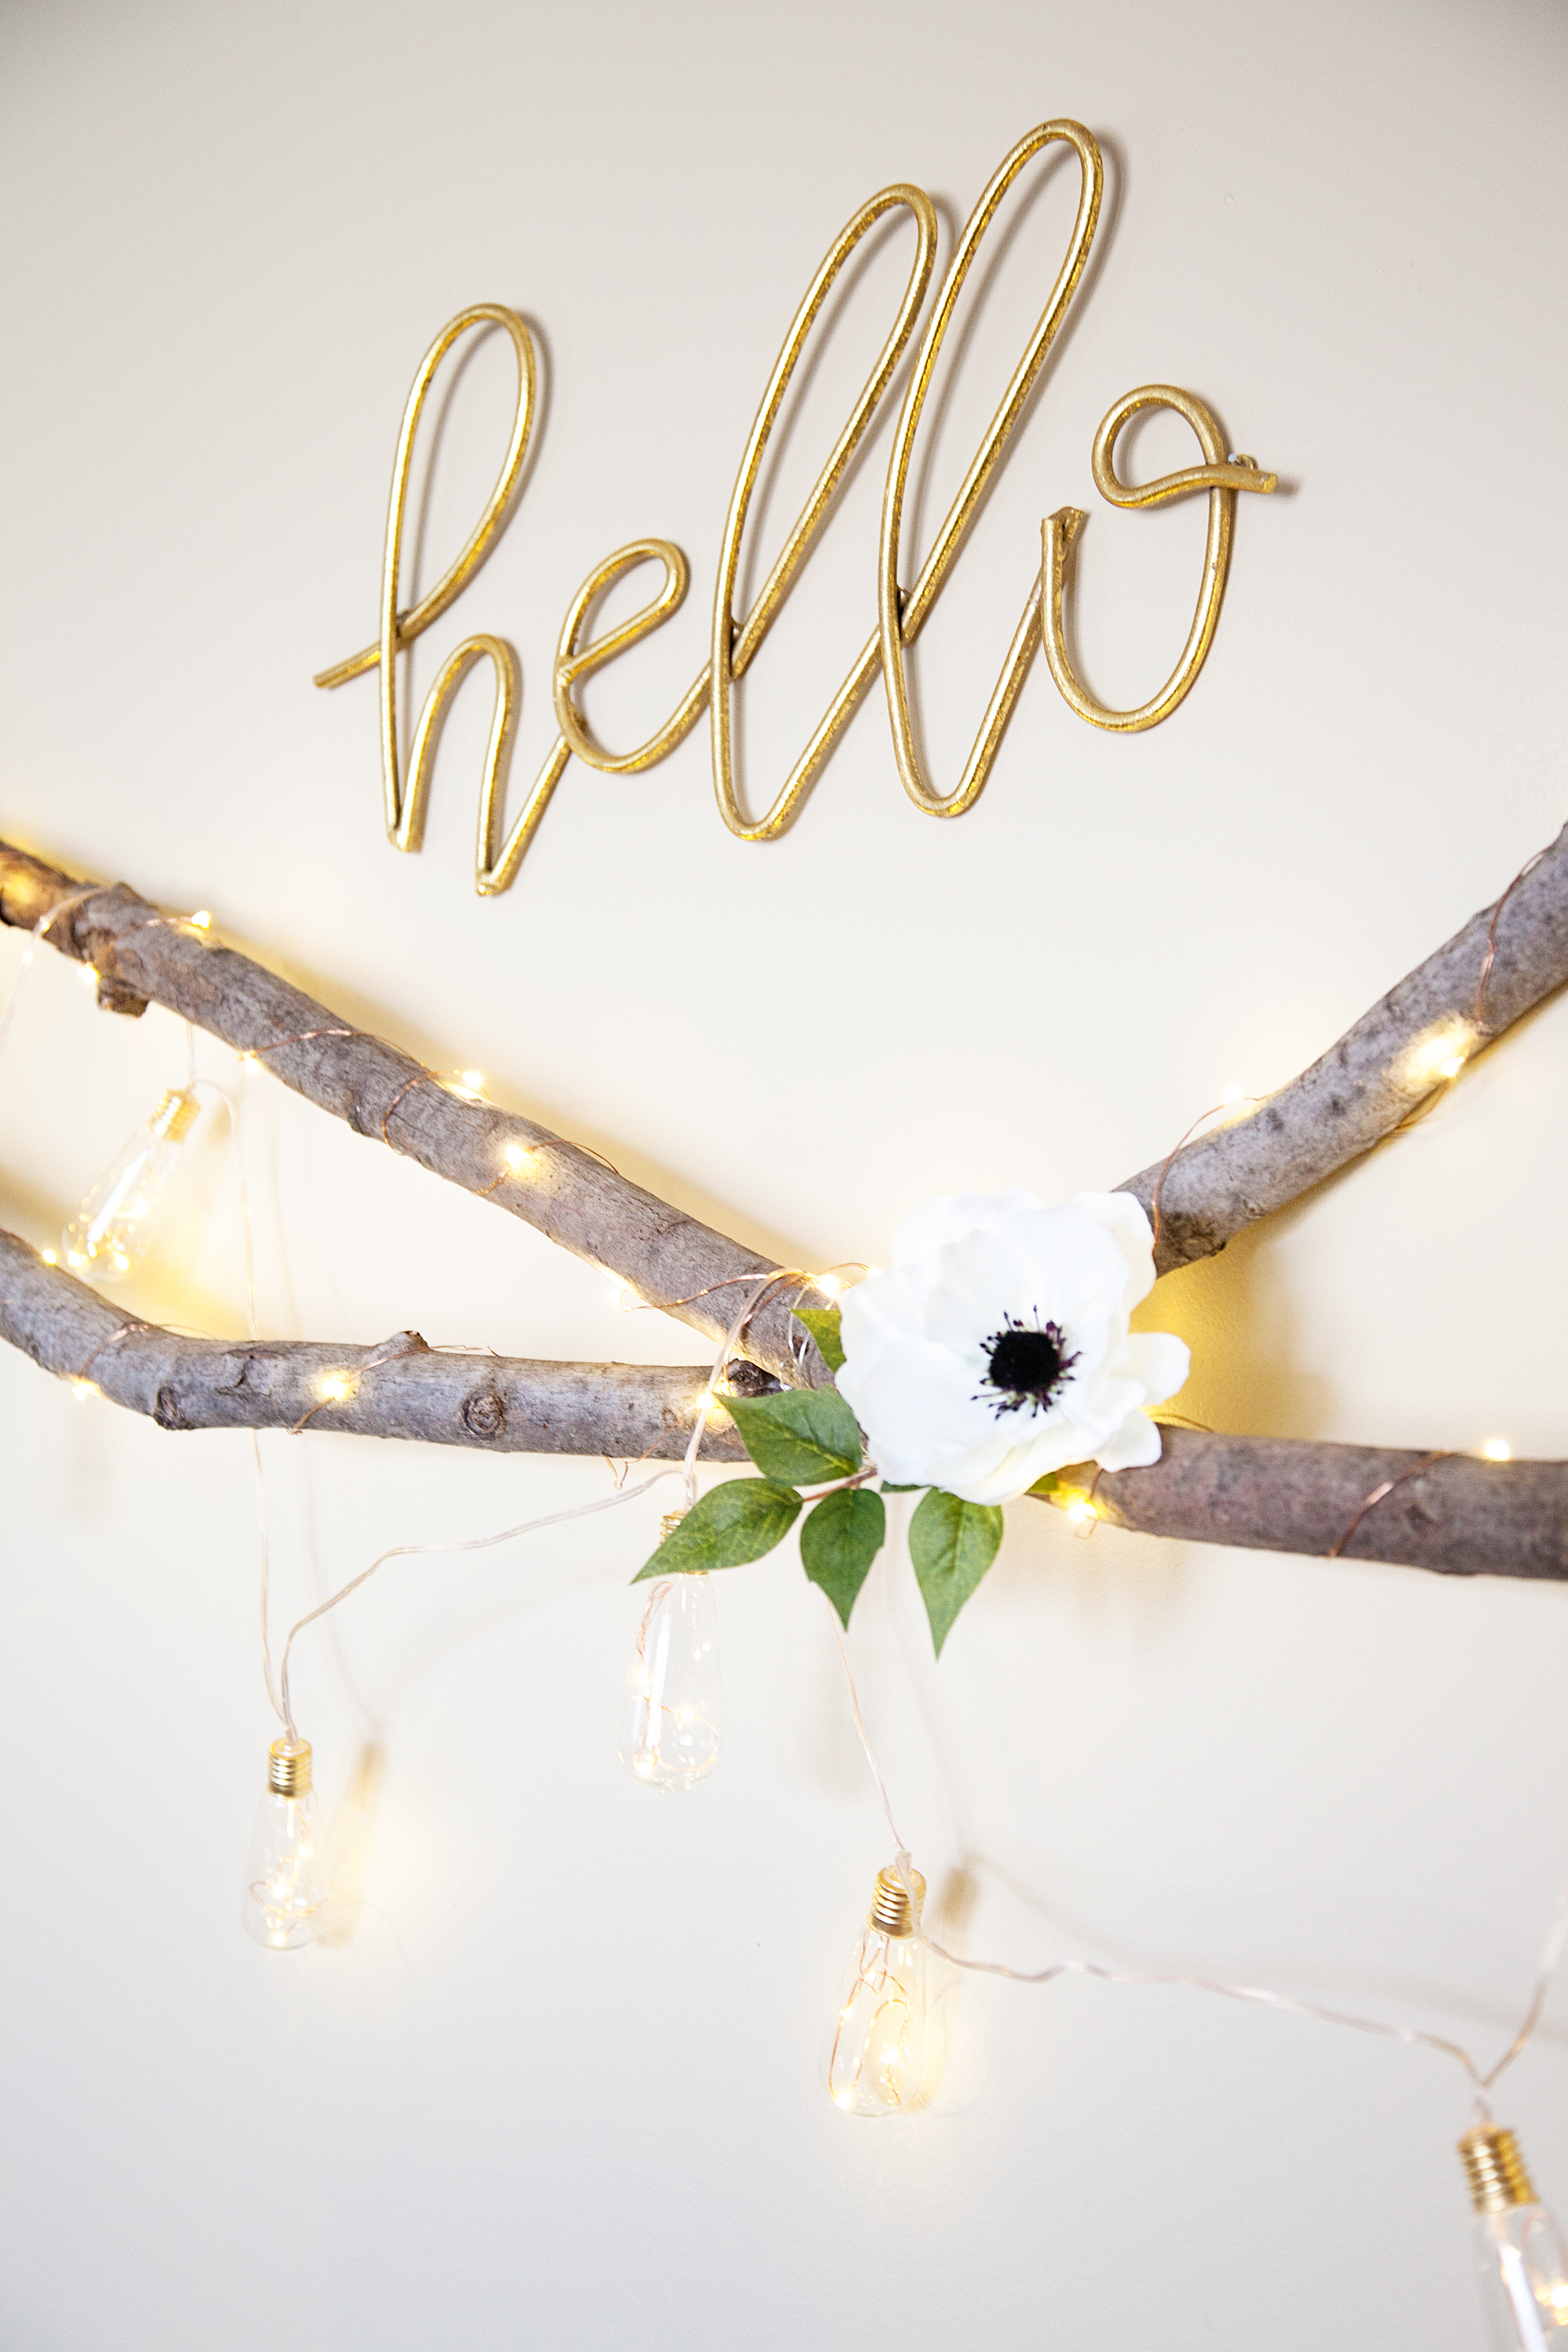 Lighted Floral Swag | Perfect to Add a Little Romance to Any Room